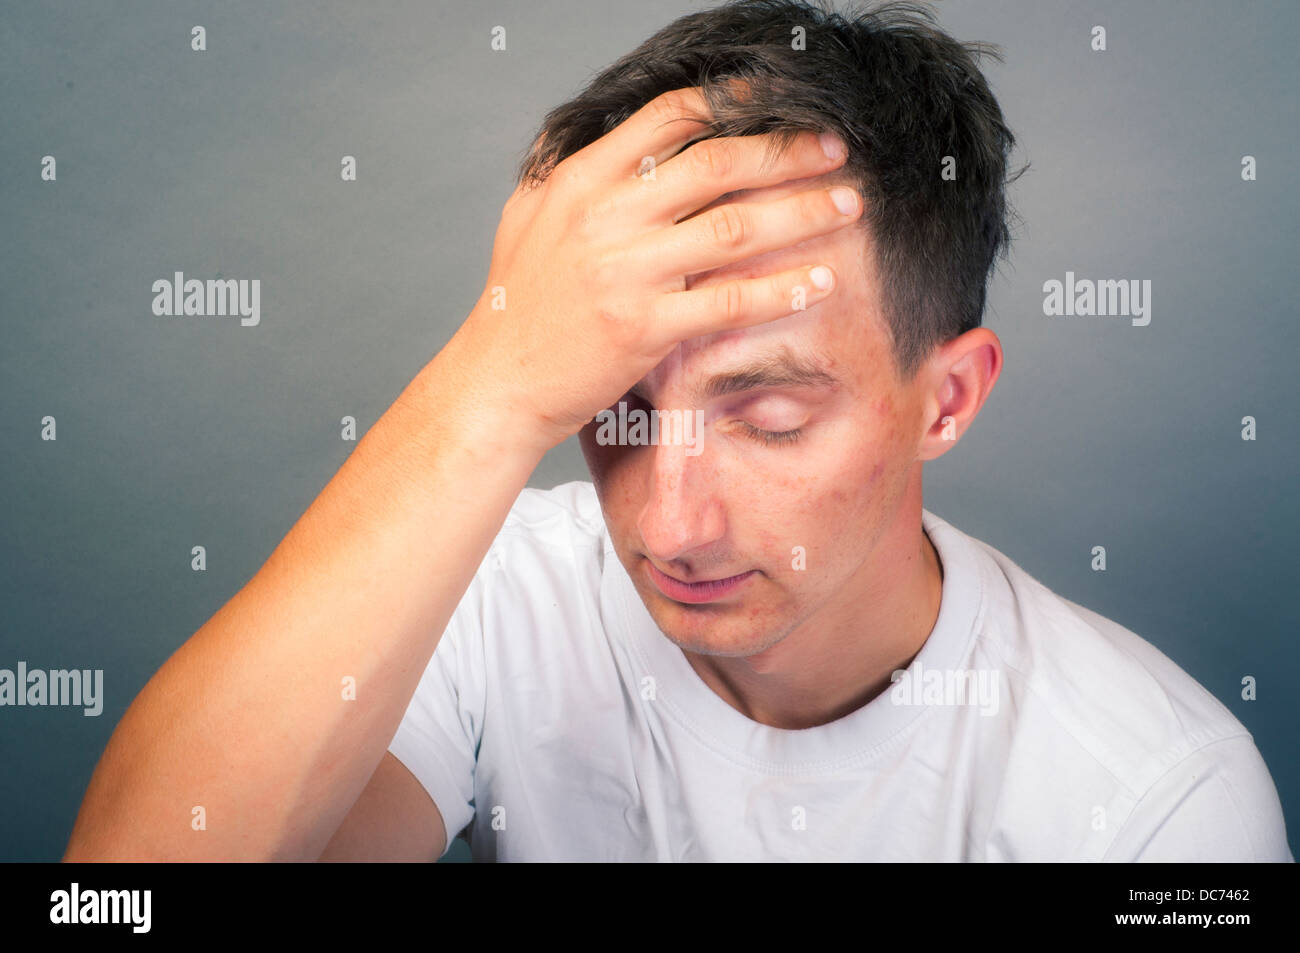 an image of upset young man - Stock Image